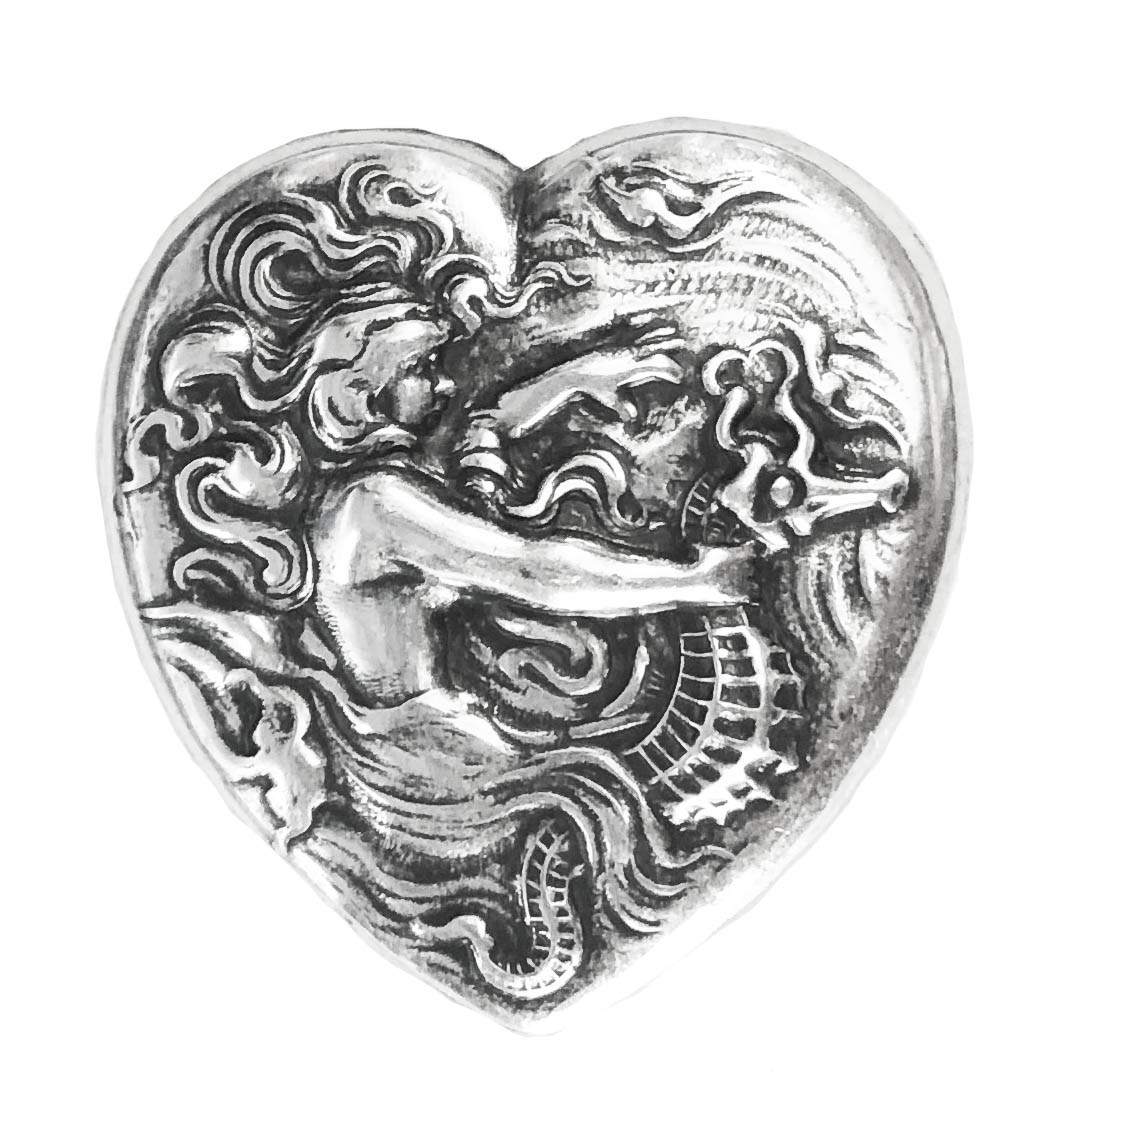 mermaid on seahorse, mermaid, silverplate, heart stamping, heart, seahorse, silverware, silverplate silverware, 39x38mm, antique silver, us made, nickel free, B'sue Boutiques, jewelry making, vintage supplies, jewelry supplies, jewelry findings, 03020